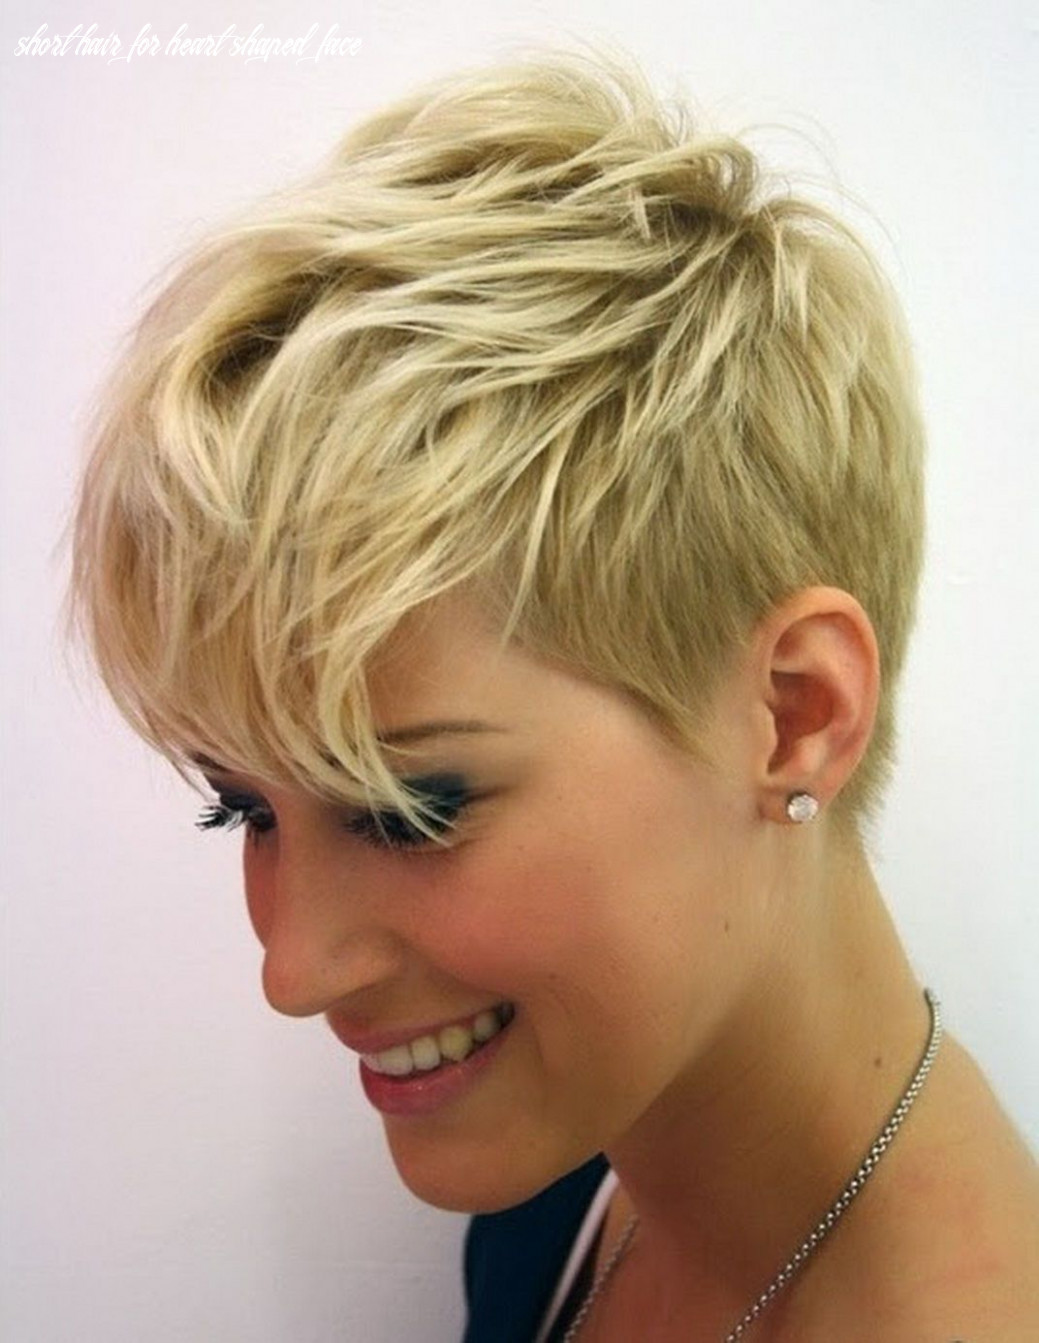 8 short hairstyles for heart shaped faces (with images) | thin